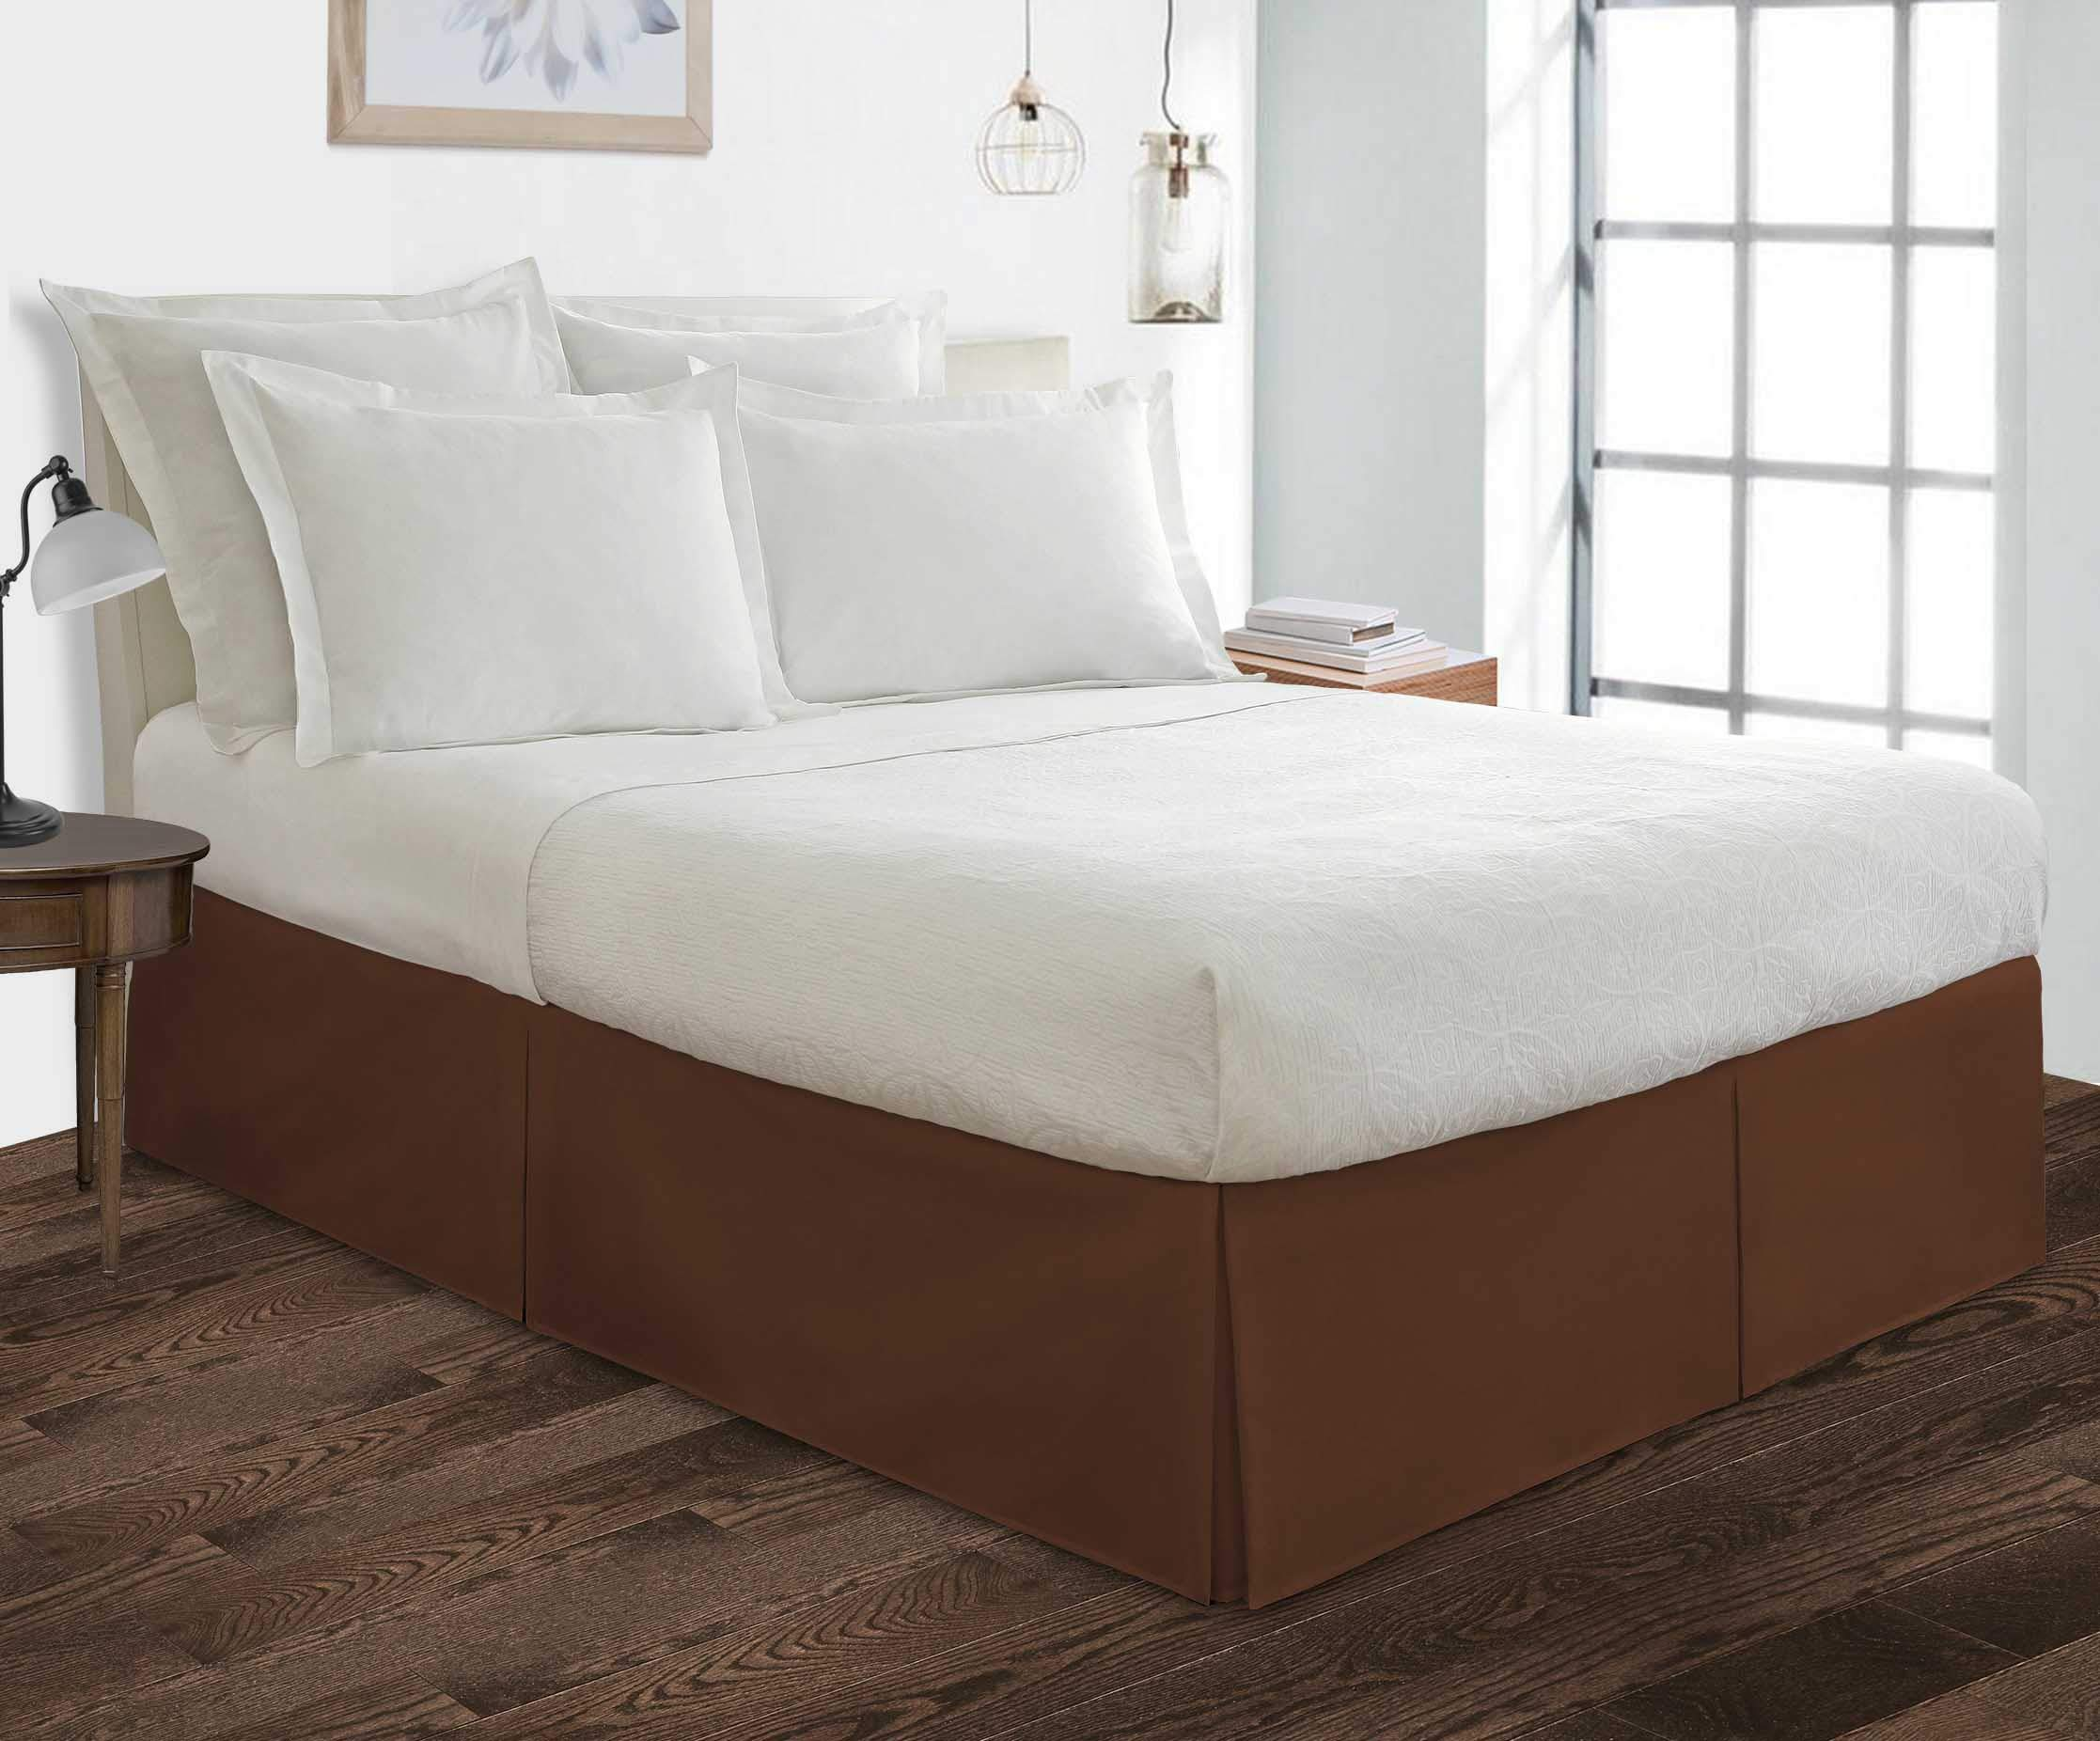 "550 TC Egyptian Cotton Bedding 1X Bed Skirt 21"" Inch Drop Queen (60X80) Chocolate Solid"